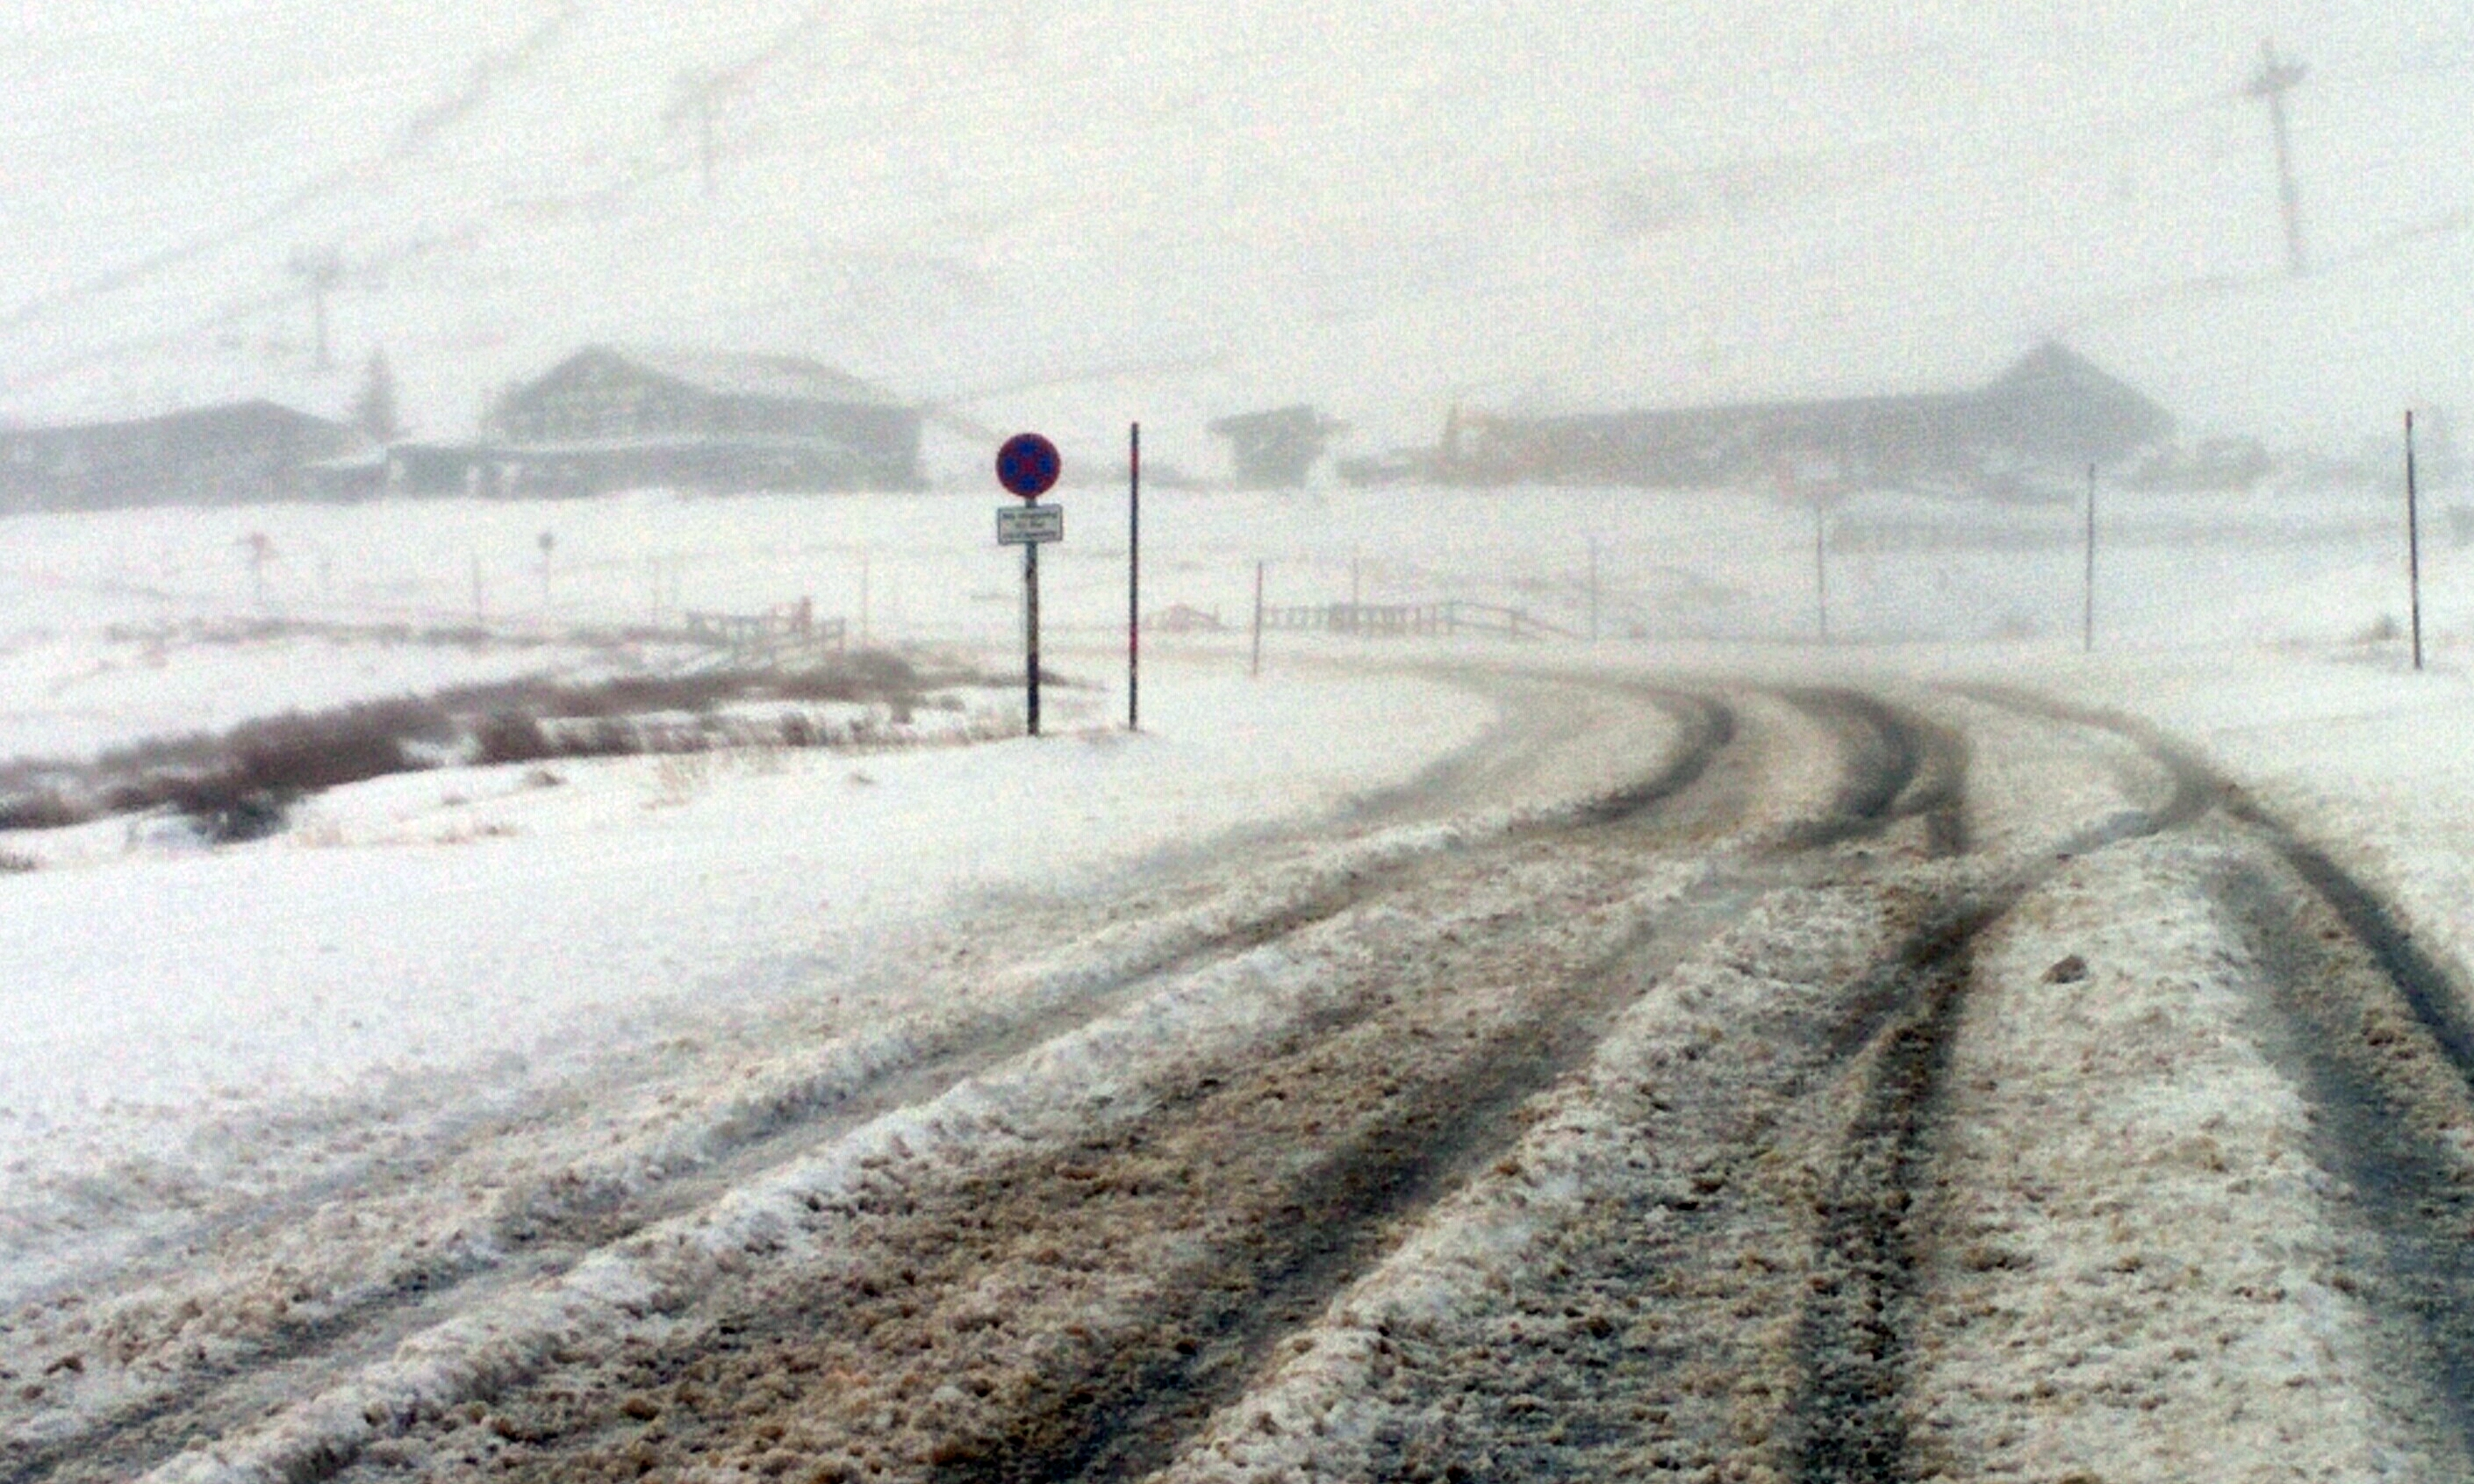 White-out conditions near the Glenshee ski centre on Boxing Day.